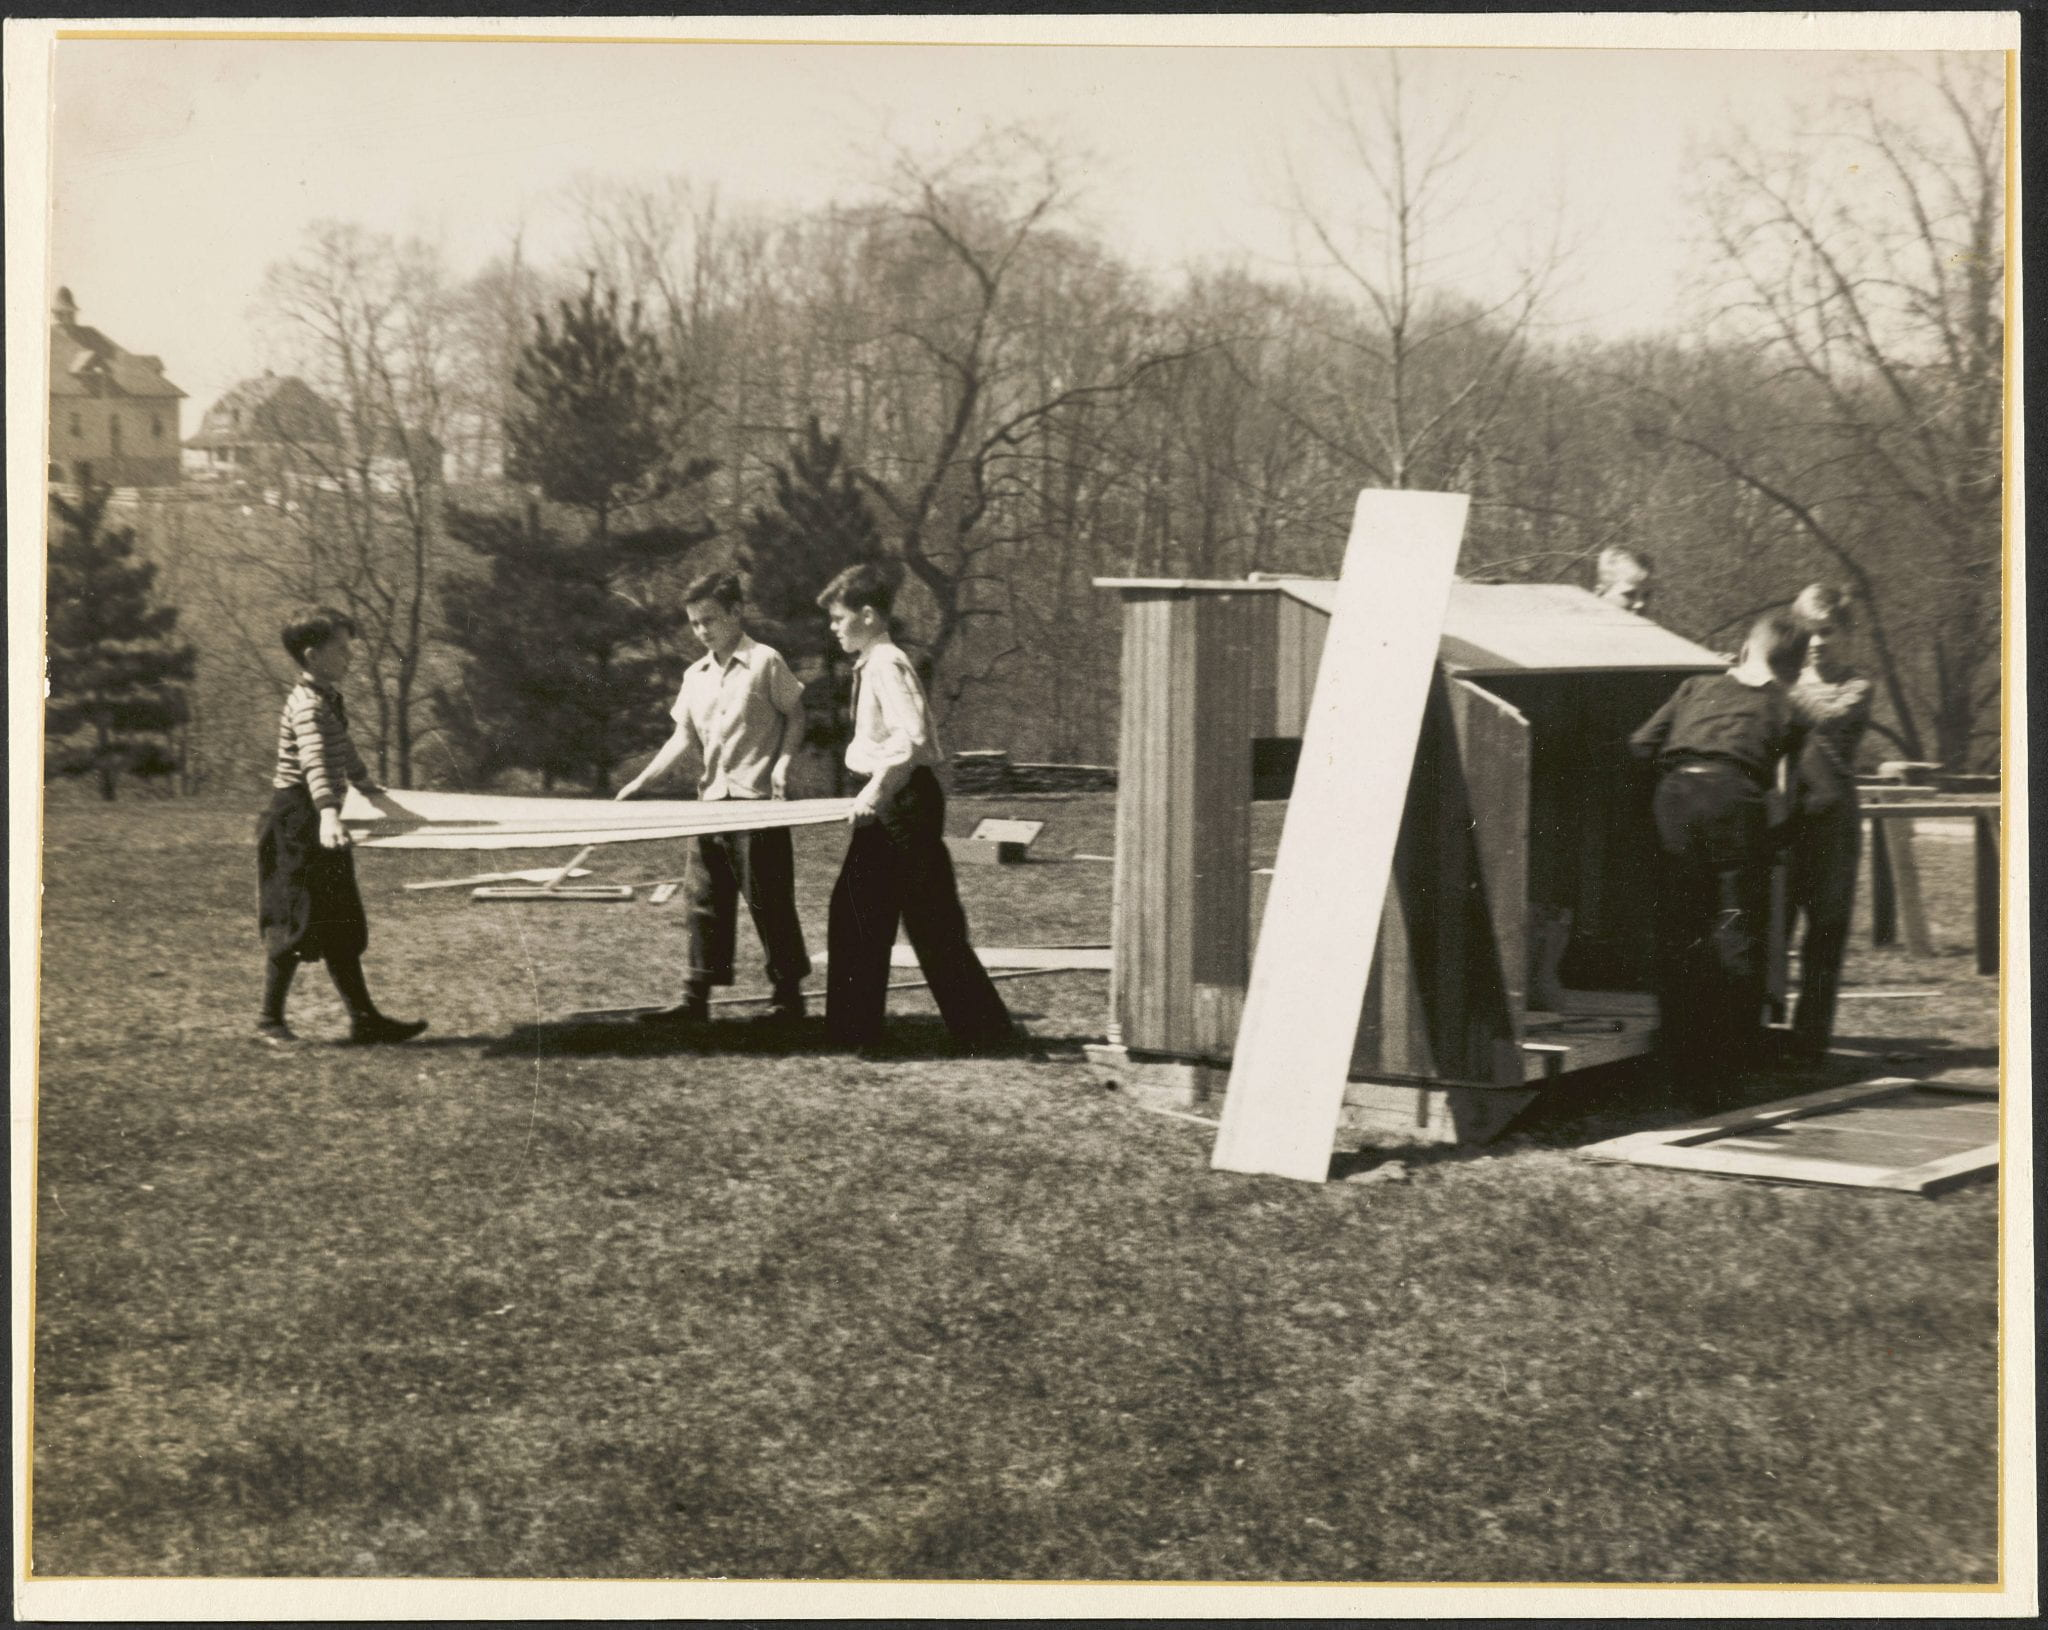 1930s students building a chicken coop.